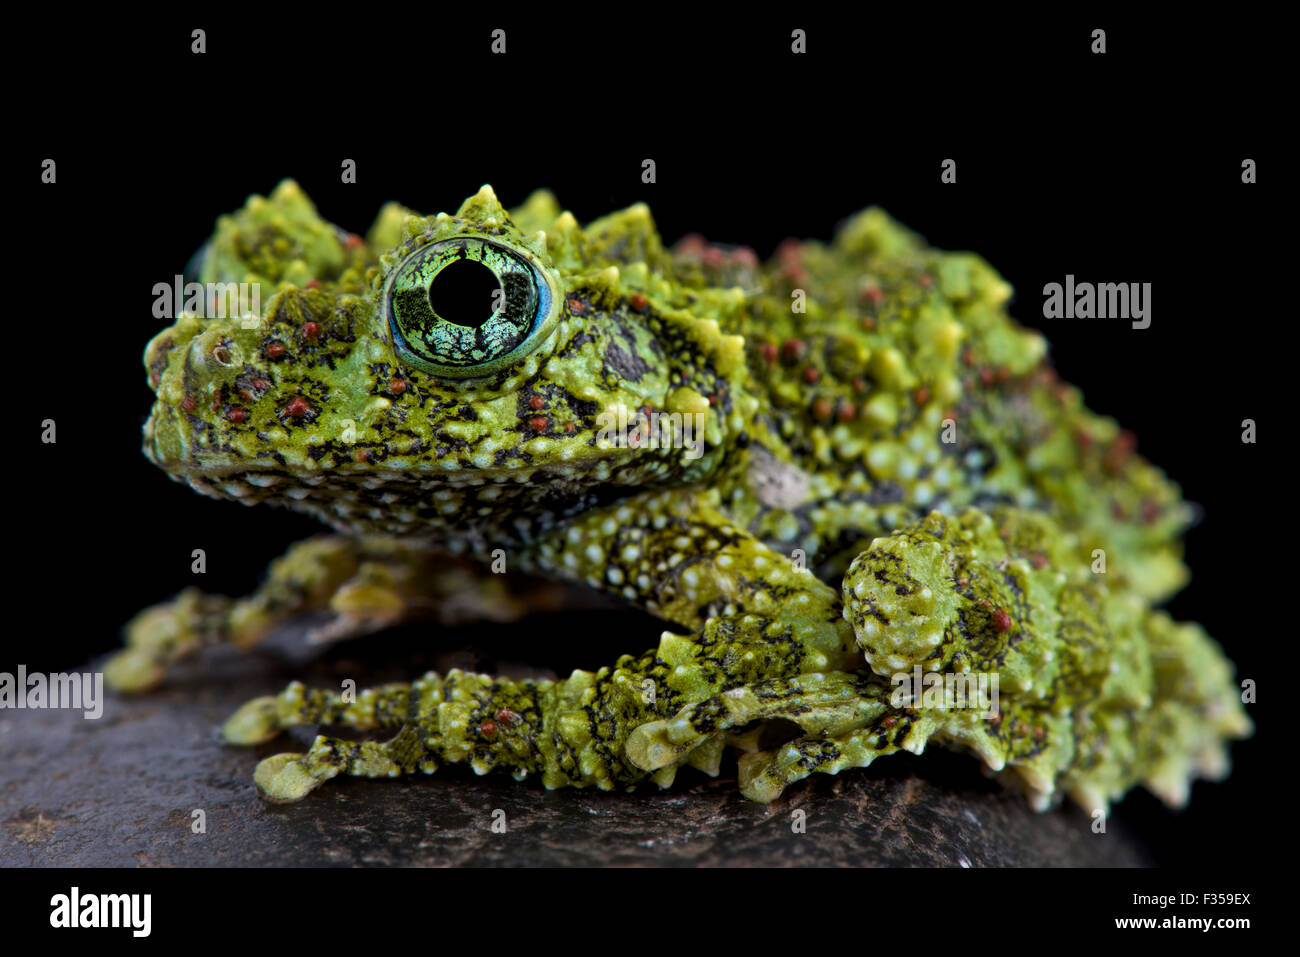 Theloderma corticale moussue (grenouille) Photo Stock